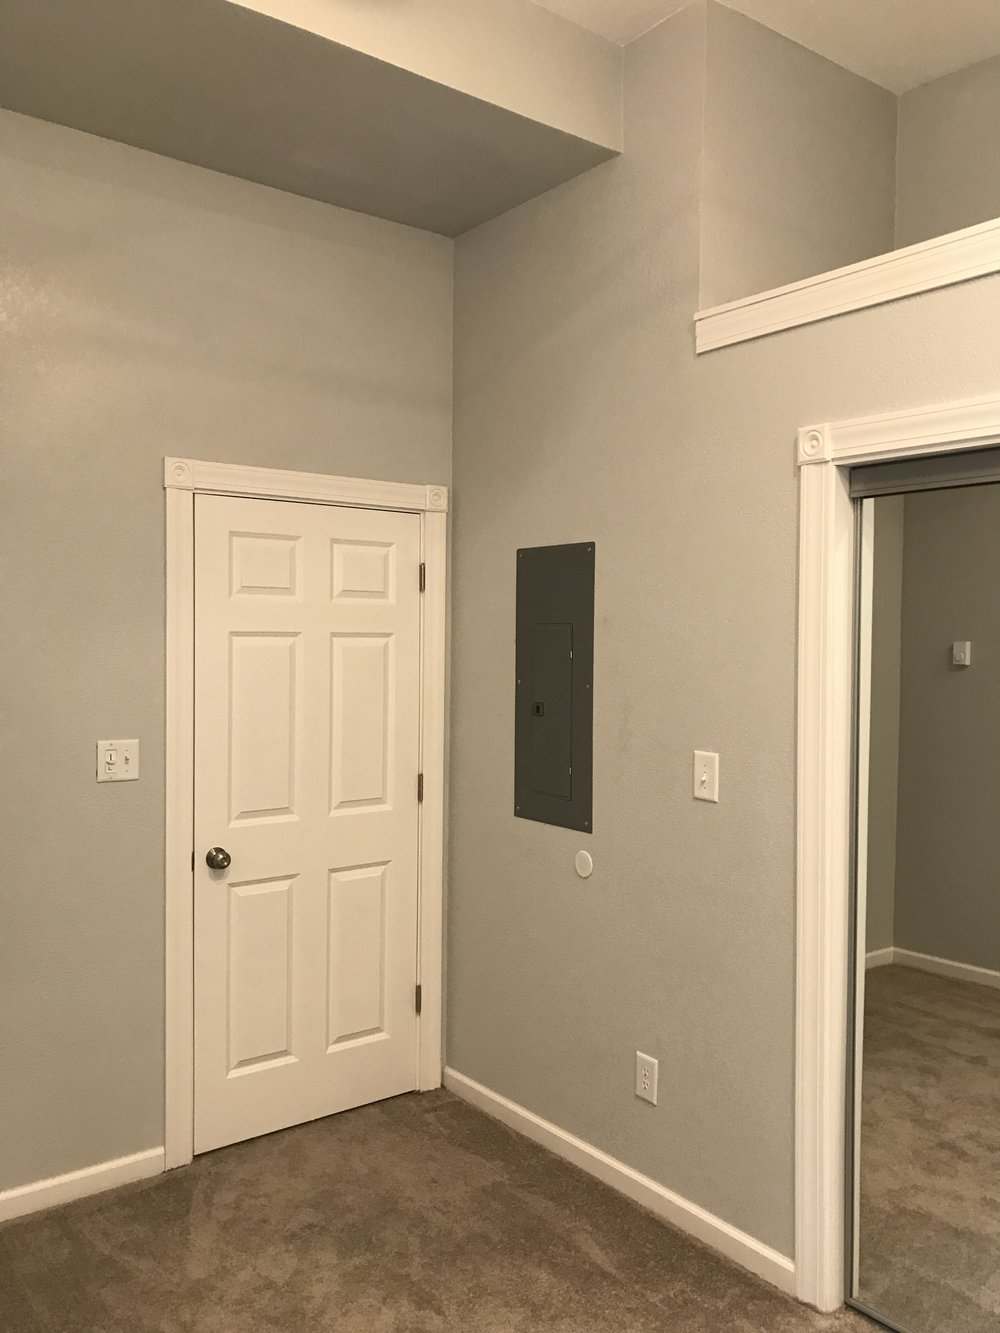 Bedroom - Extra Storage above closet